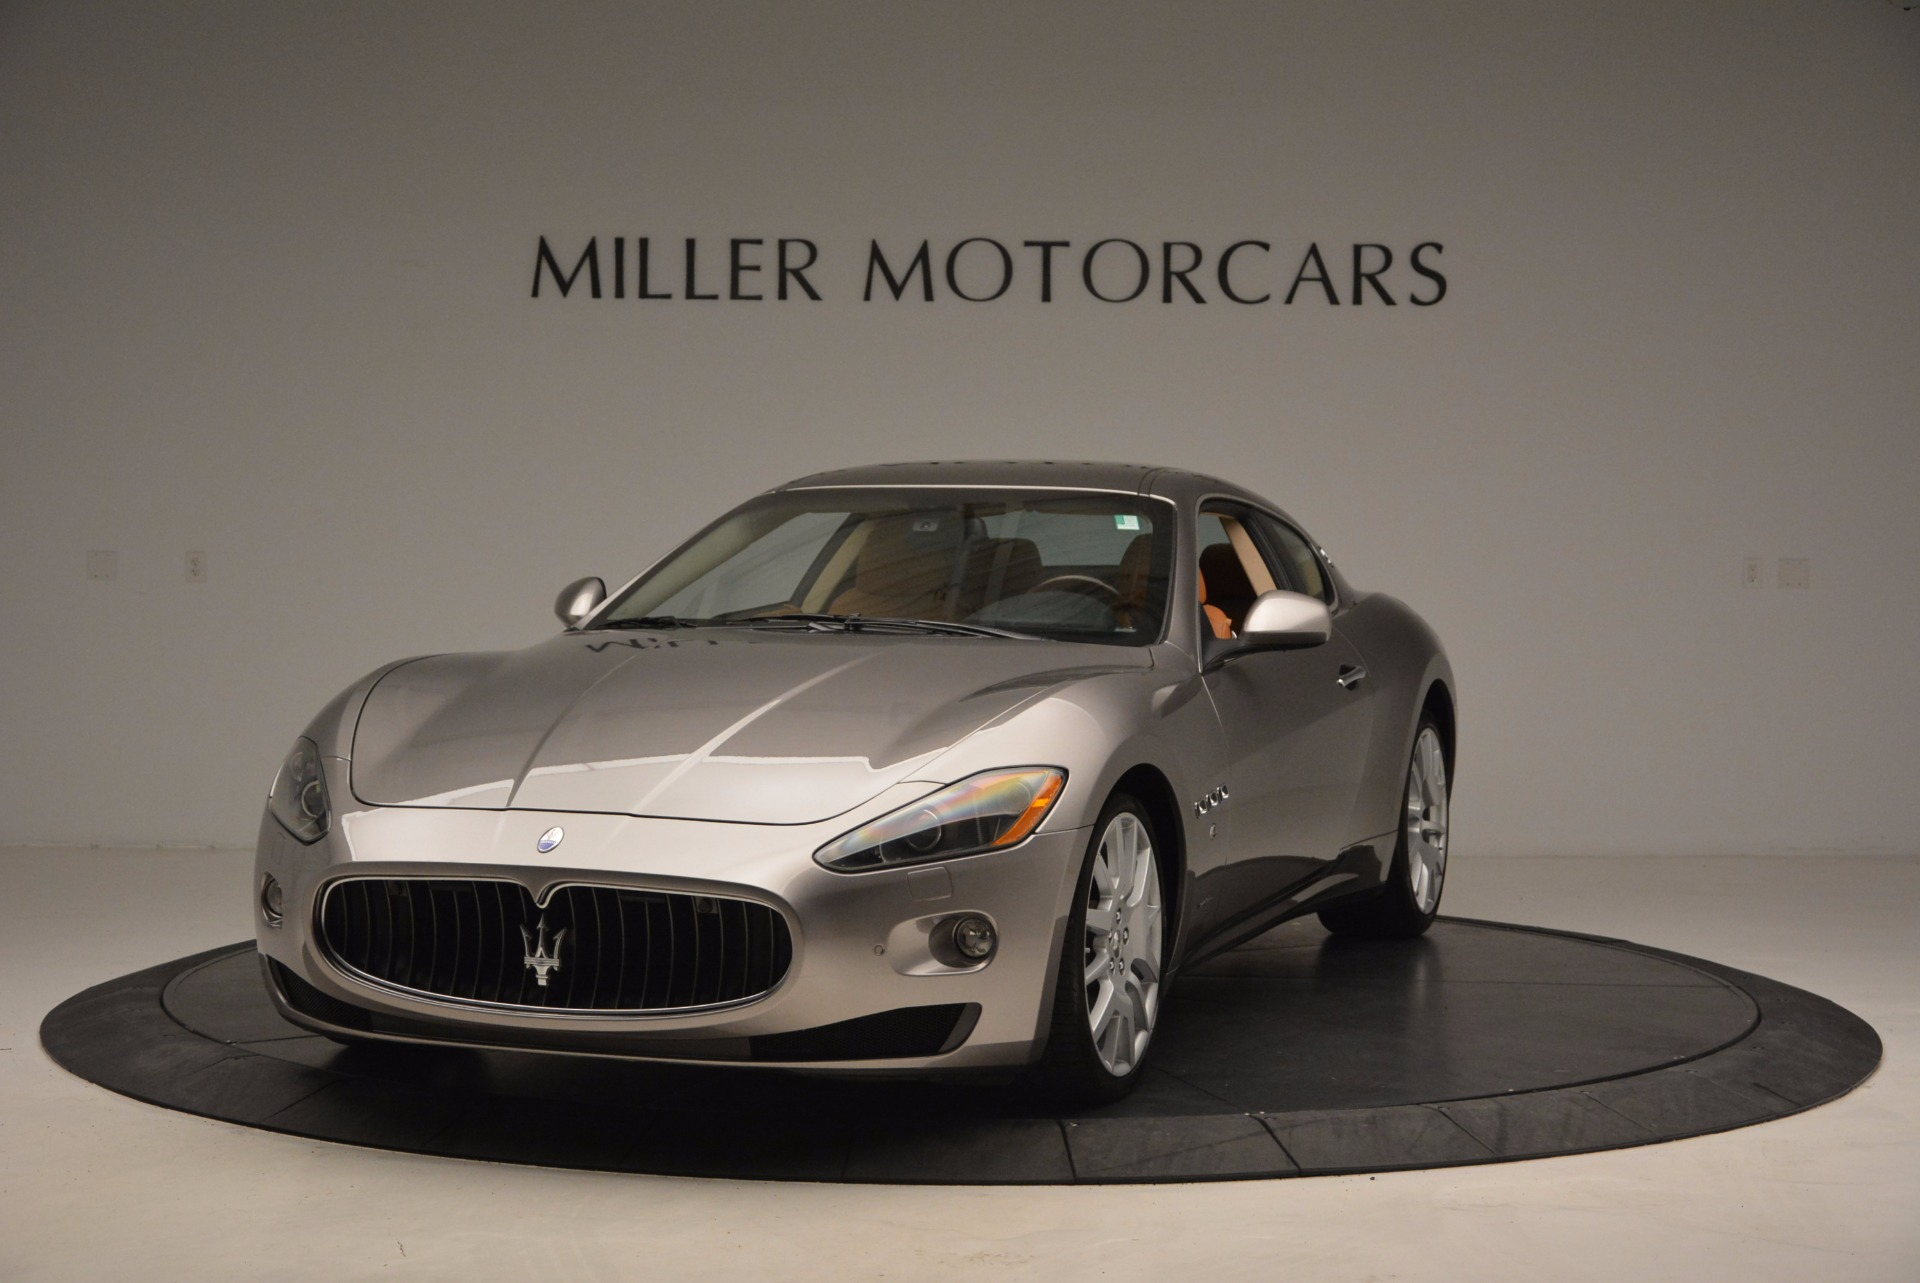 Used 2009 Maserati GranTurismo S for sale Sold at Bentley Greenwich in Greenwich CT 06830 1